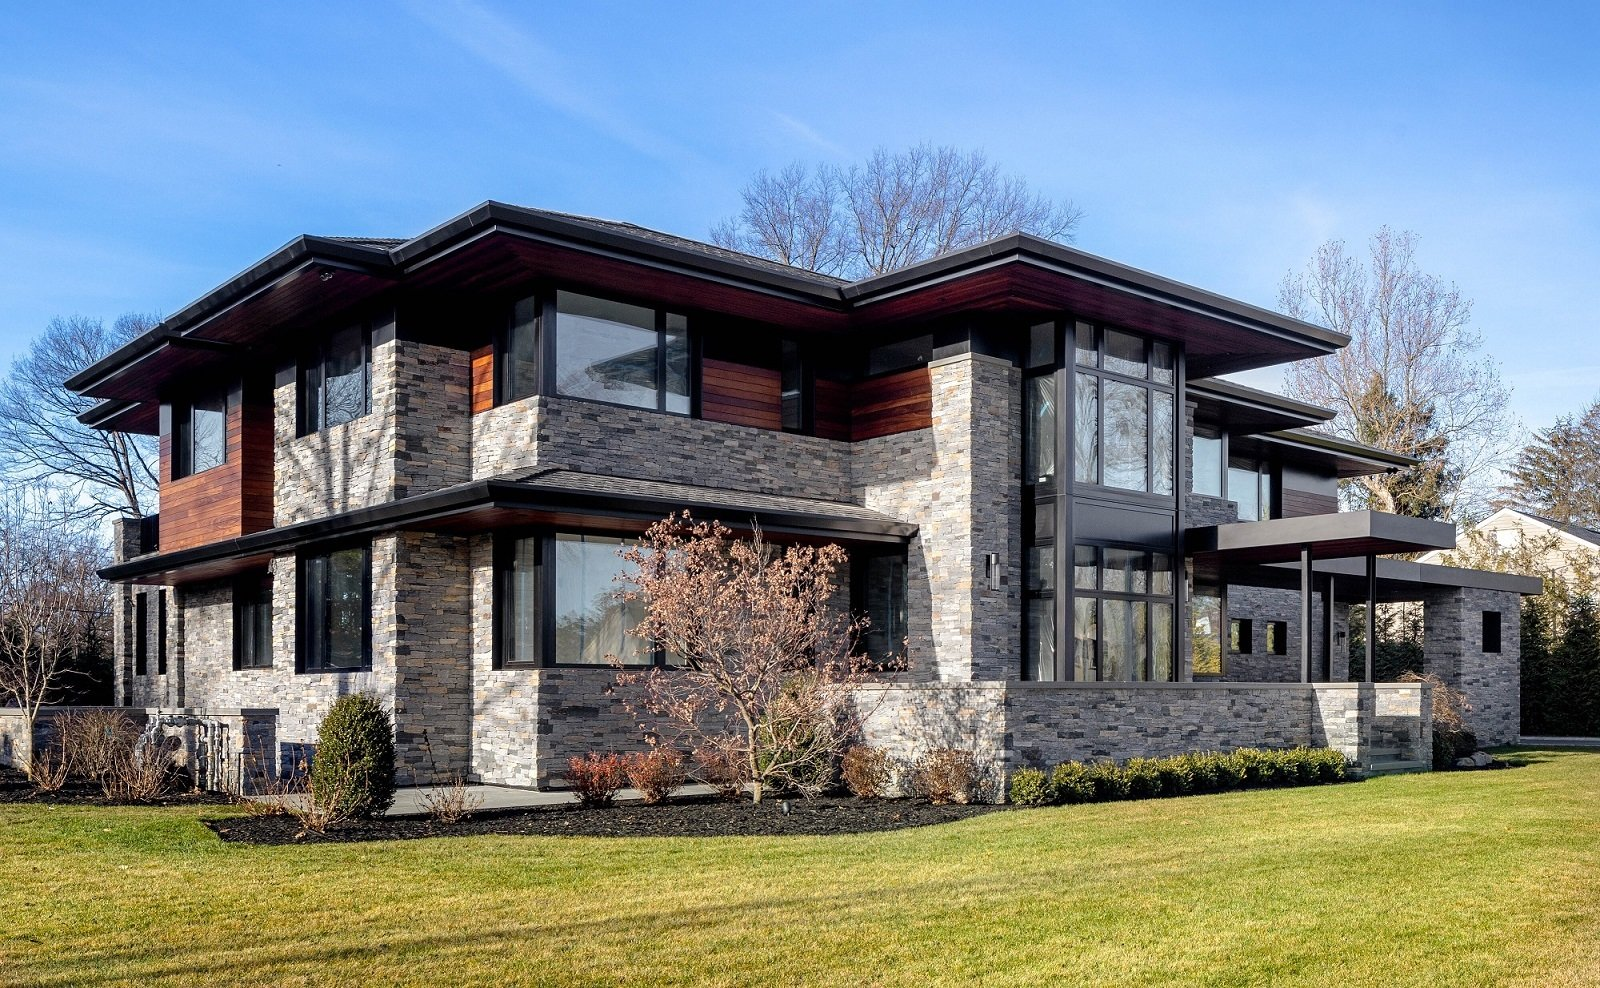 Exterior, Hipped RoofLine, Shingles Roof Material, Stone Siding Material, Wood Siding Material, and House Building Type Front Exterior  The Manhasset House by Node Architecture, Engineering, Consulting P.C.